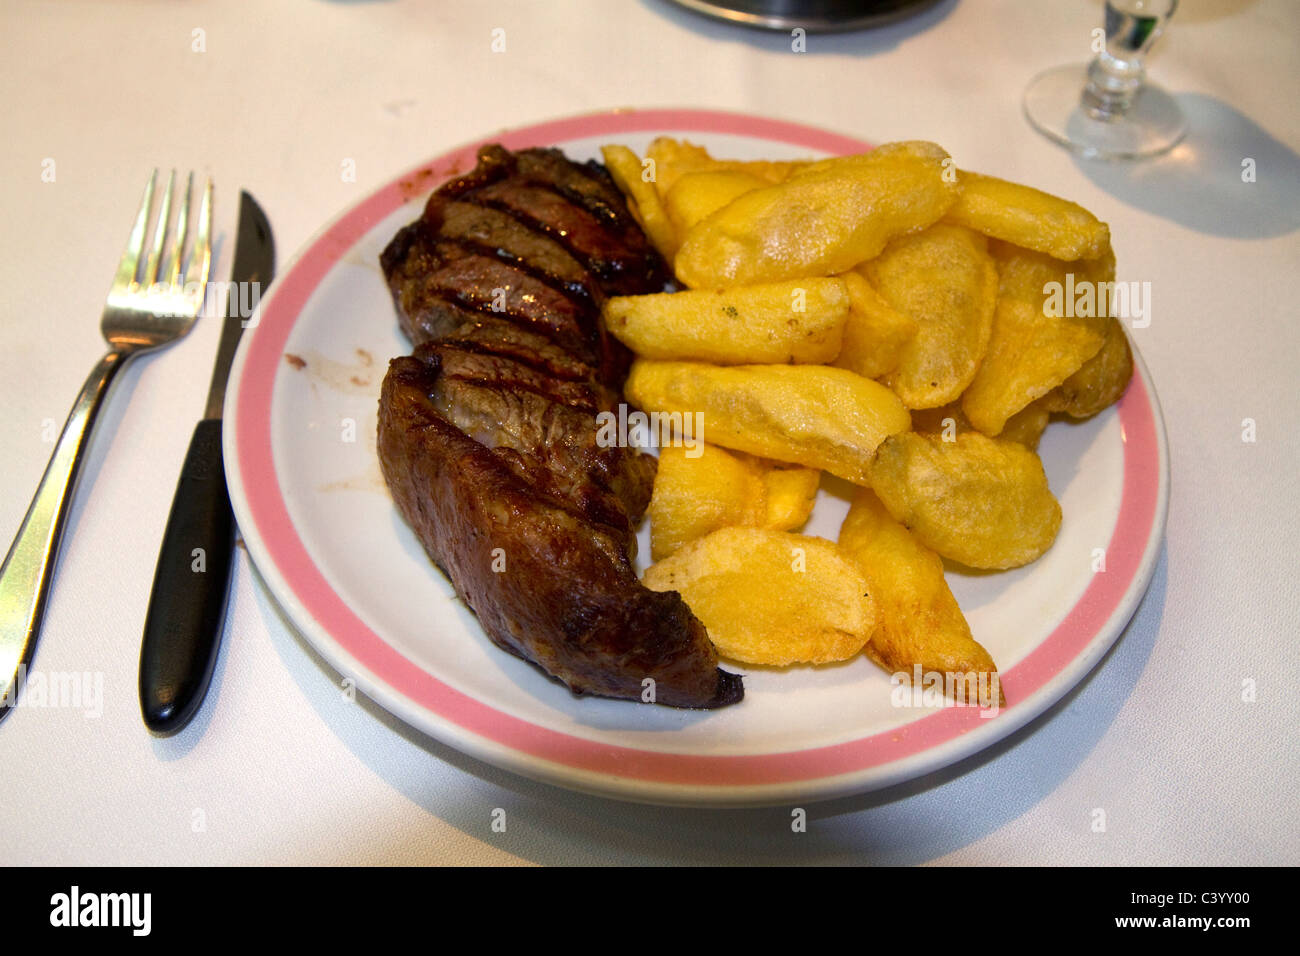 Meal of steak and fries in Buenos Aires, Argentina. - Stock Image